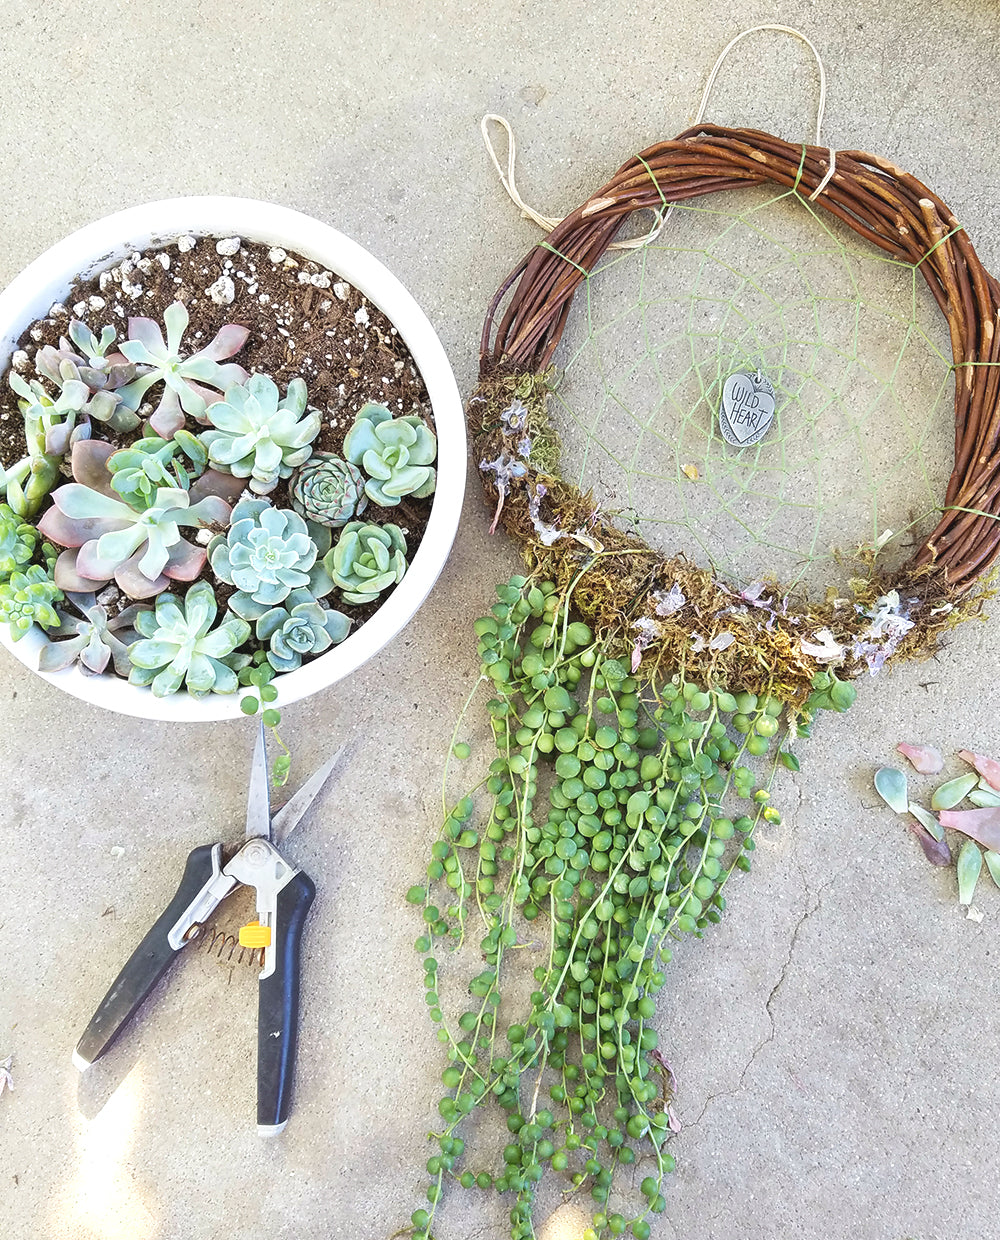 Botanical Bright - Taking Apart Your Living Succulent Dreamcatcher